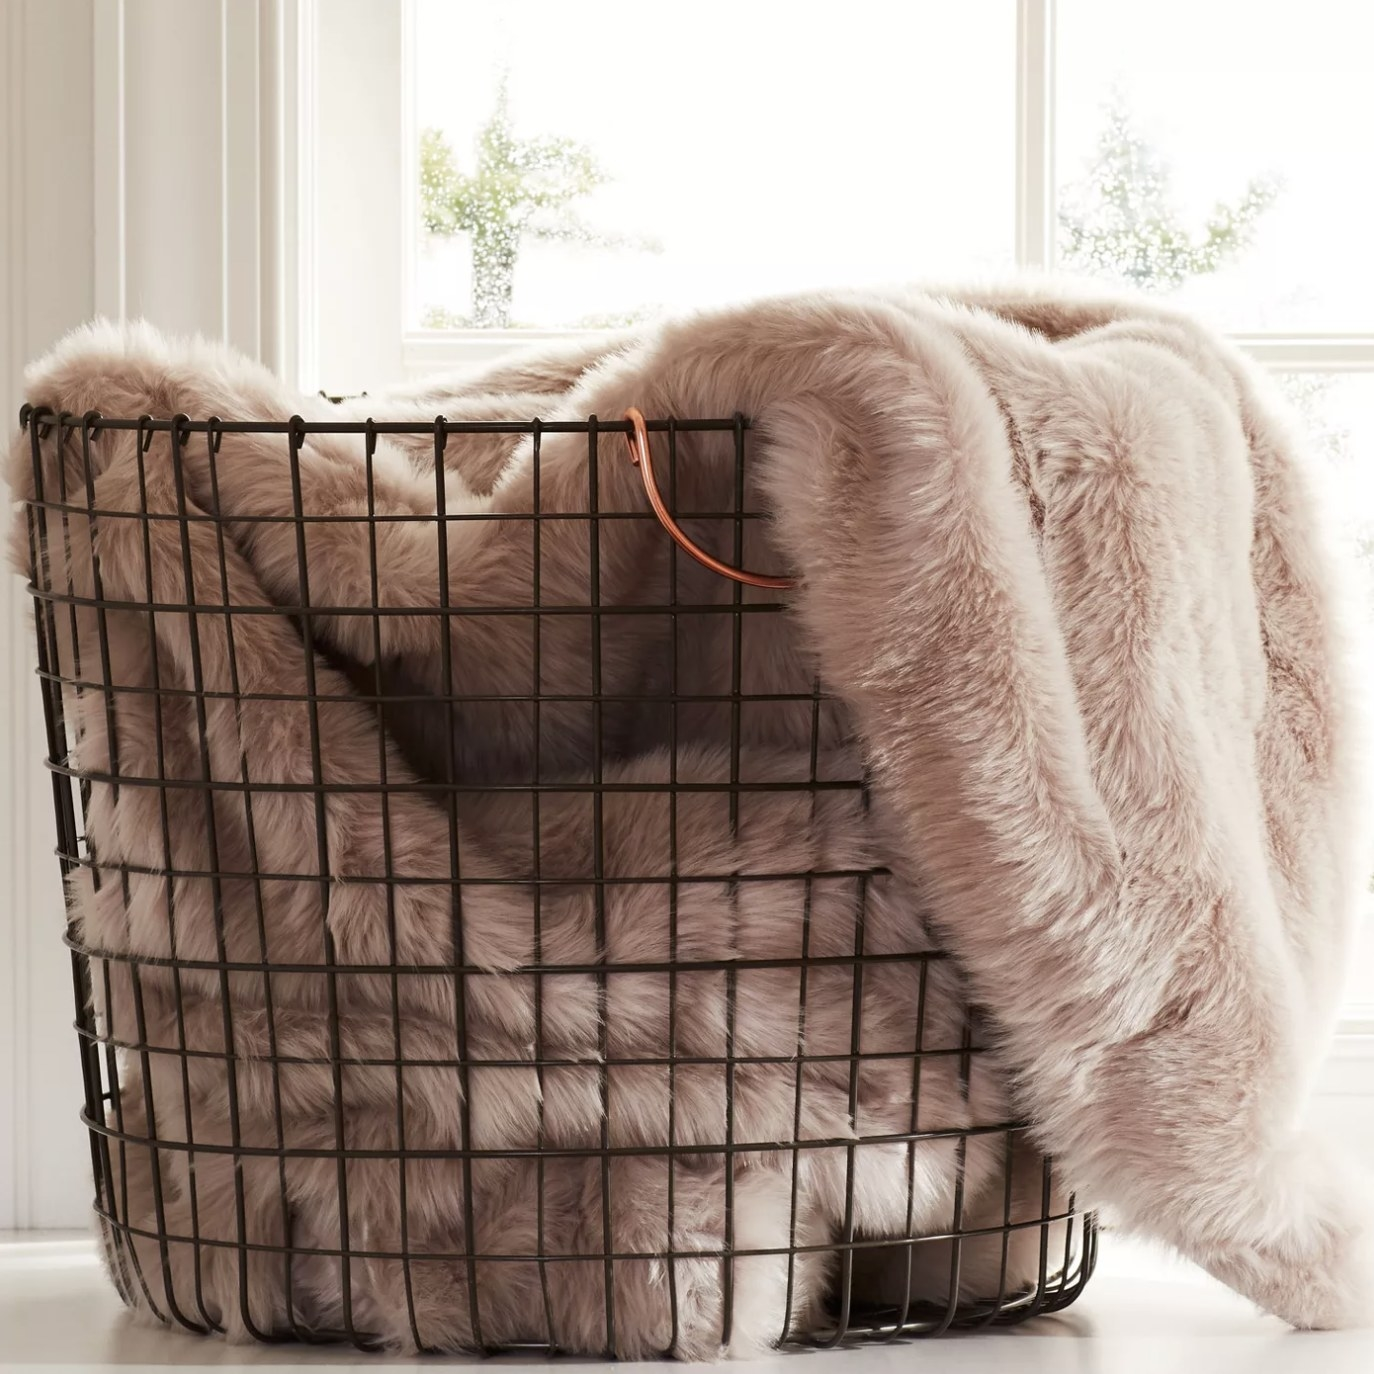 Wire basket with blanket in it.